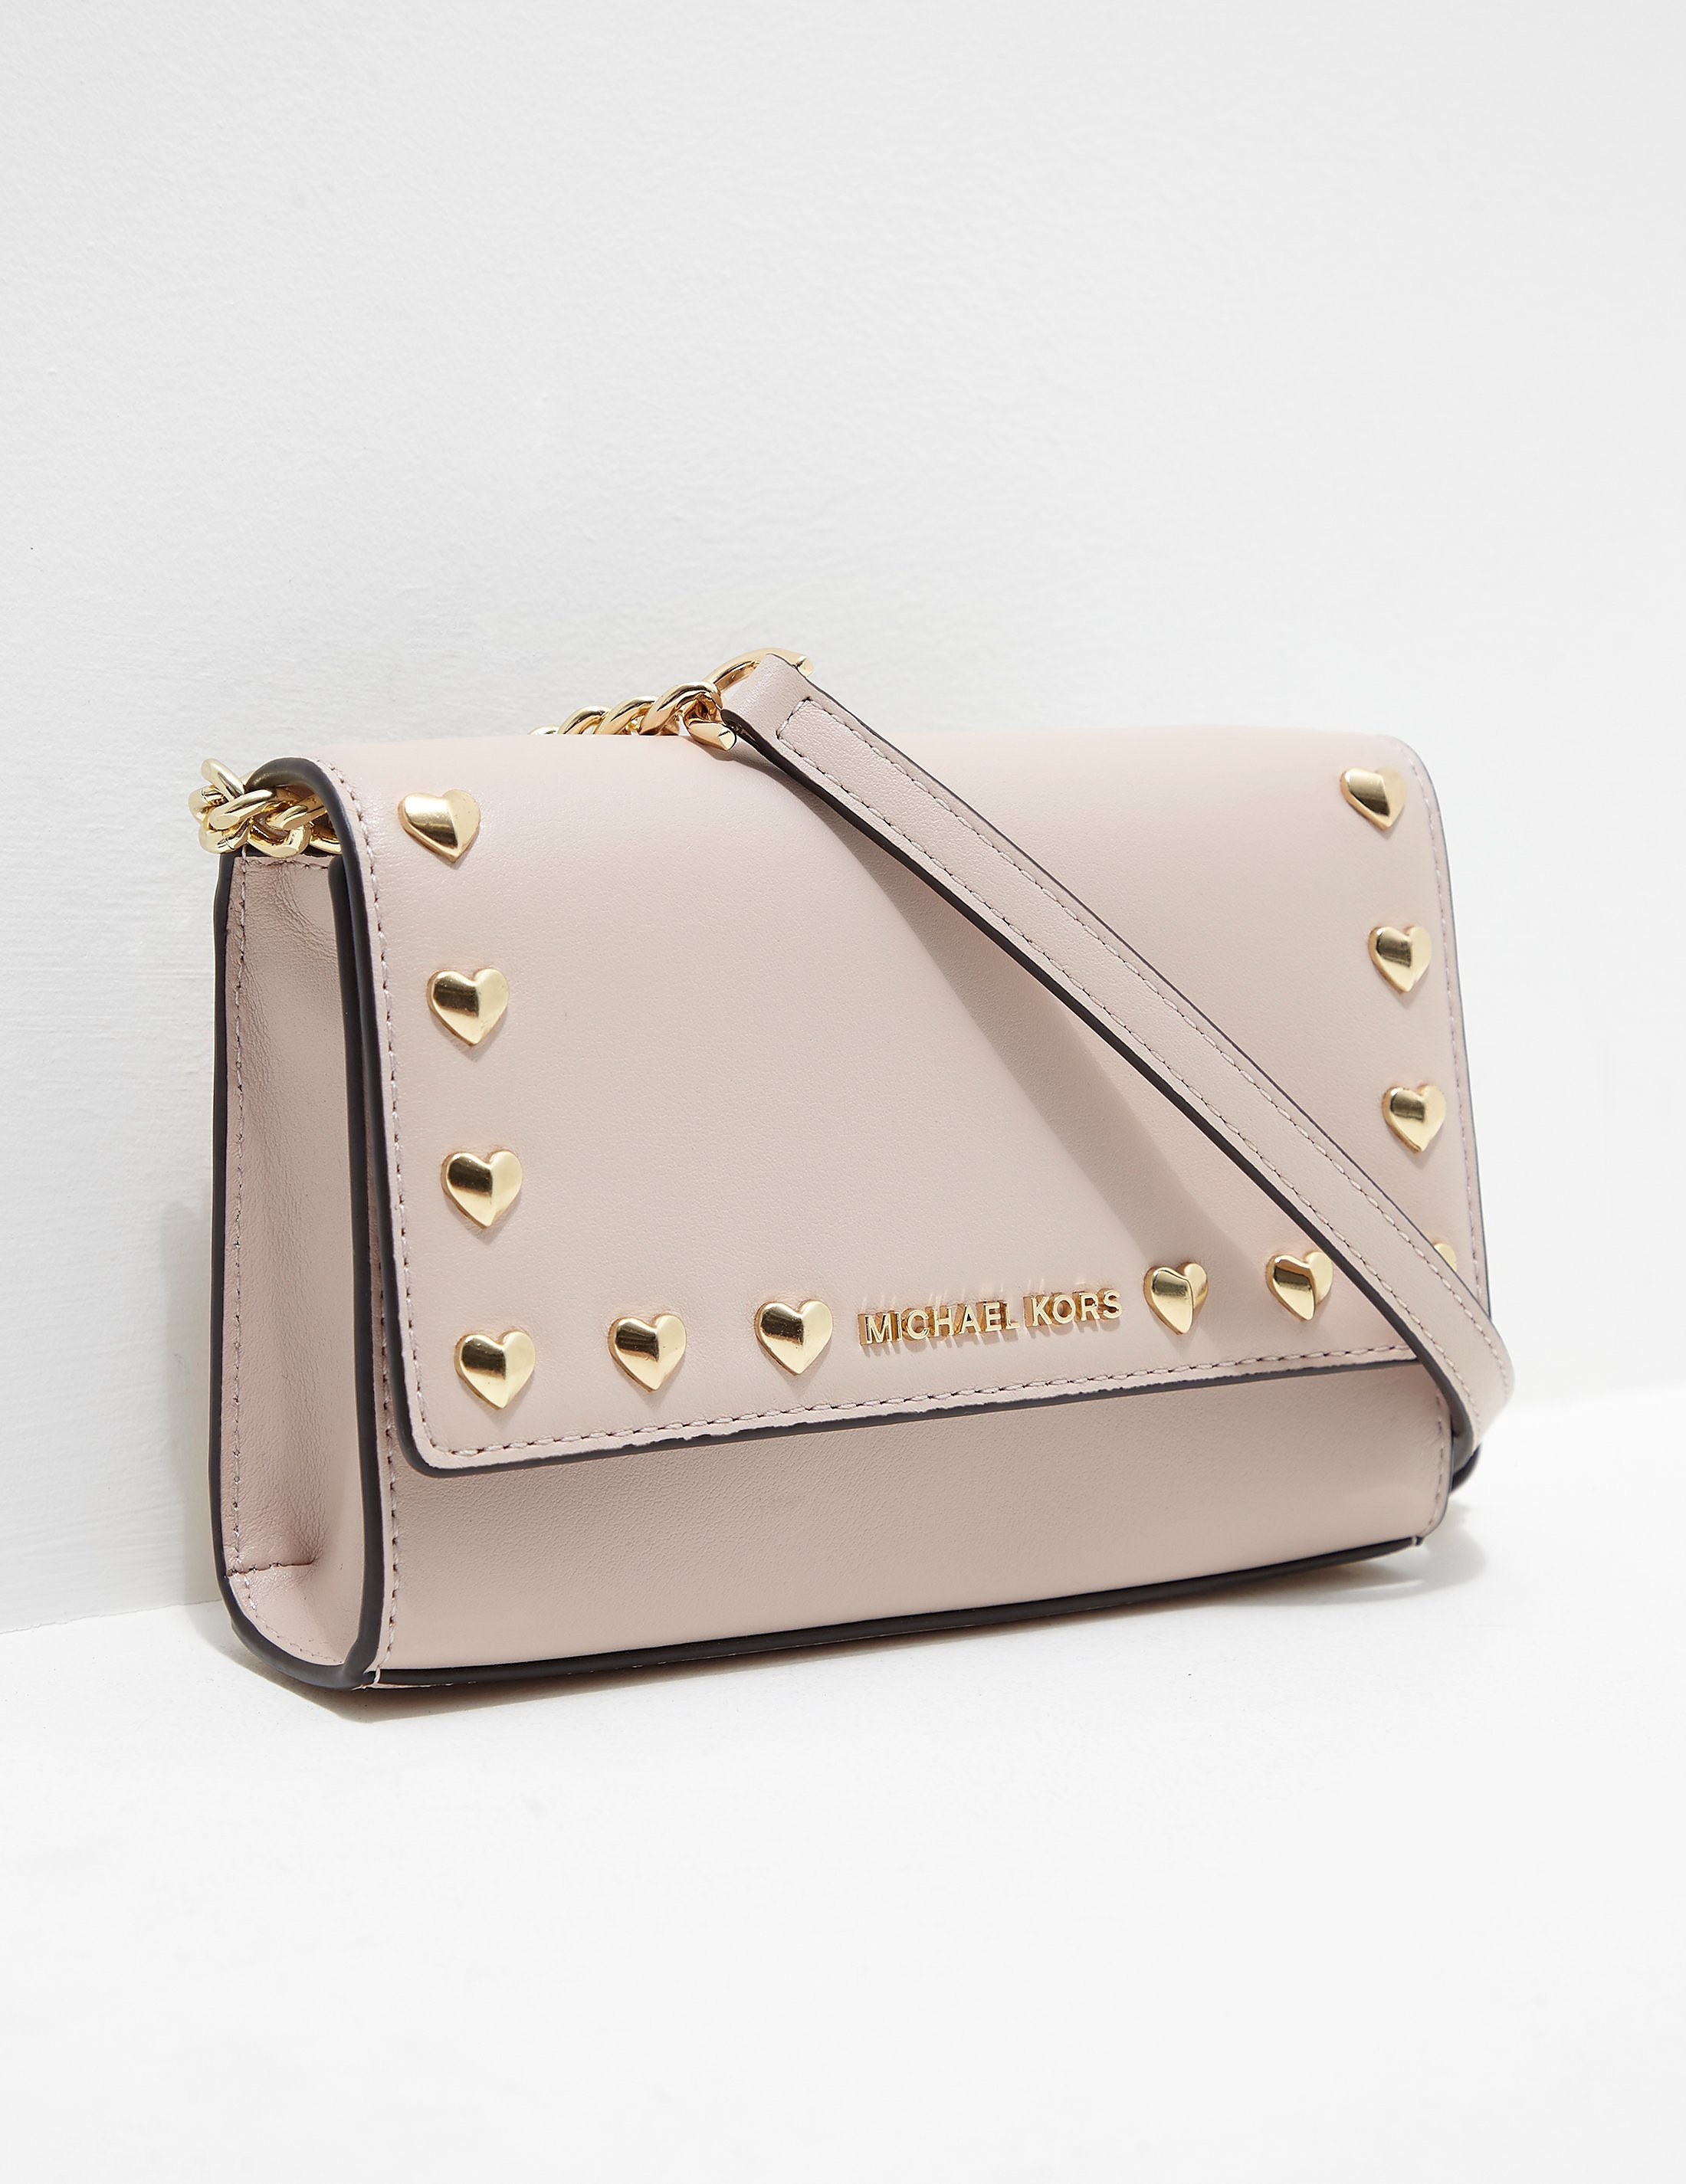 Michael Kors Love Stud Shoulder Bag